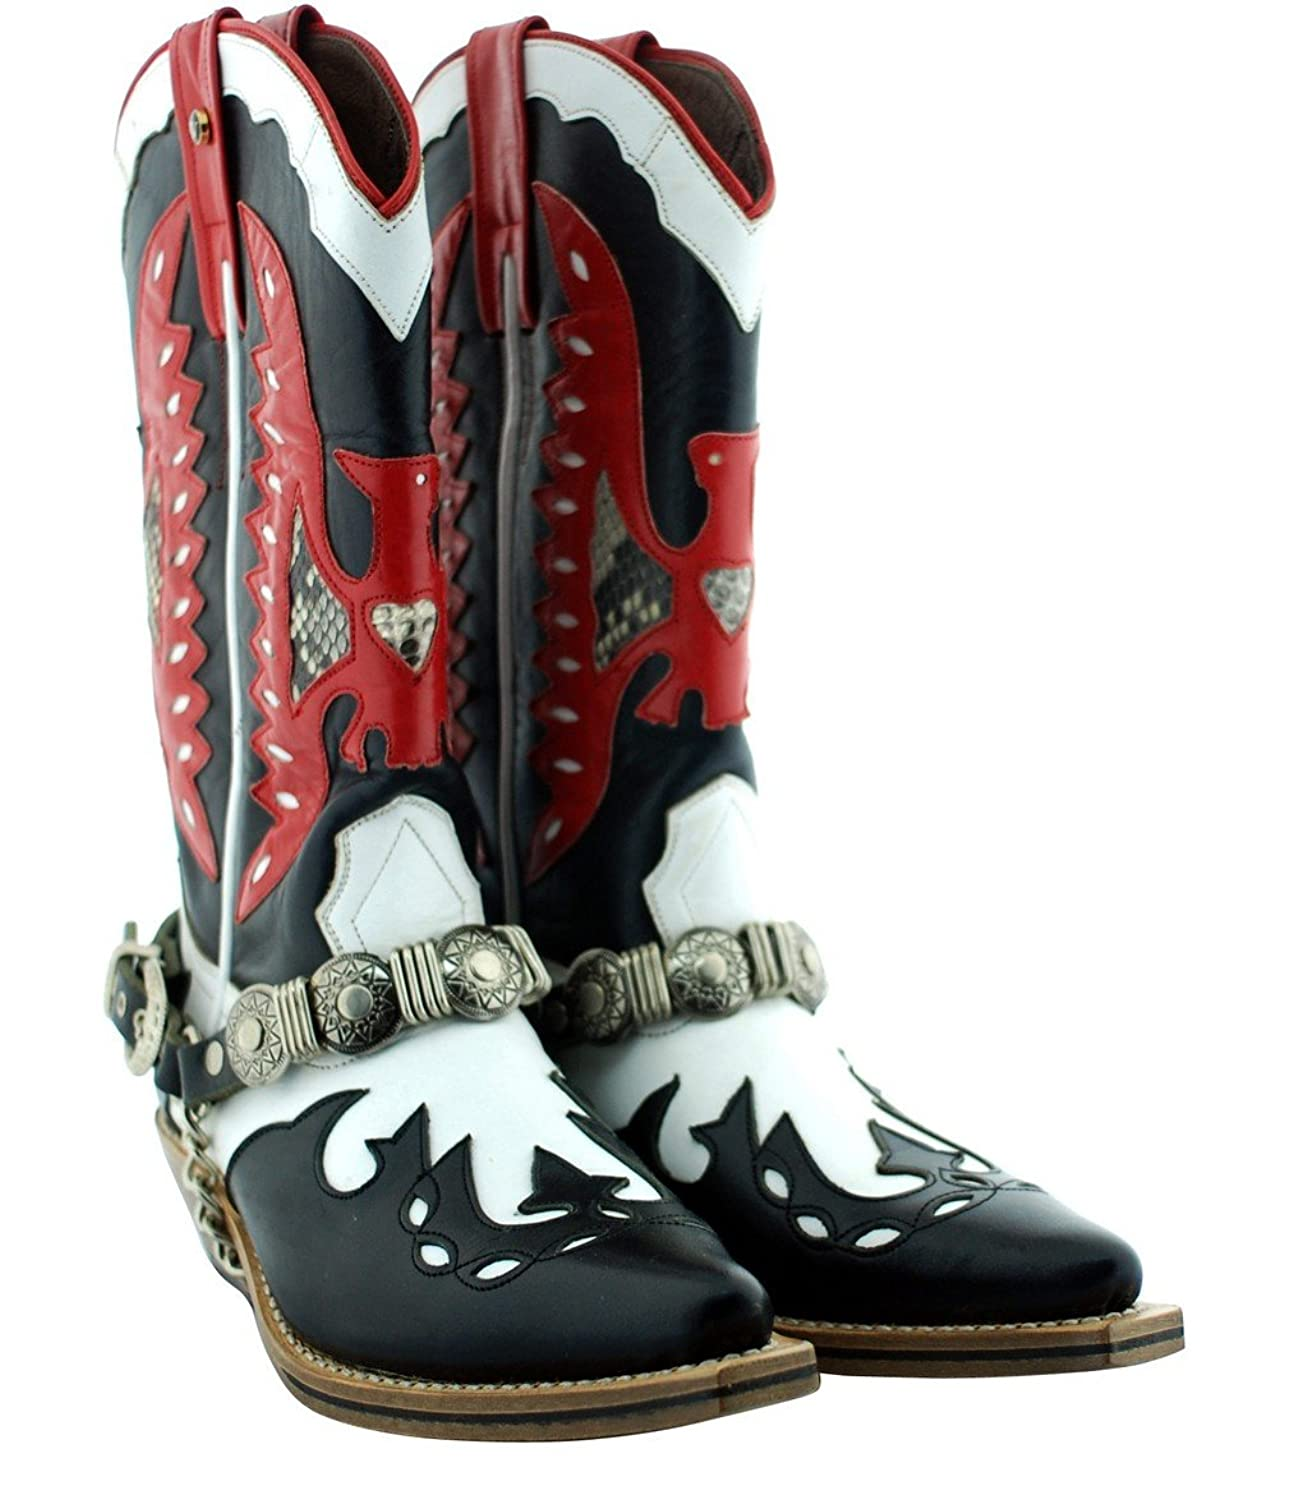 Black Red Cowboy Men's Luxury Classic Handmade Leather Boots